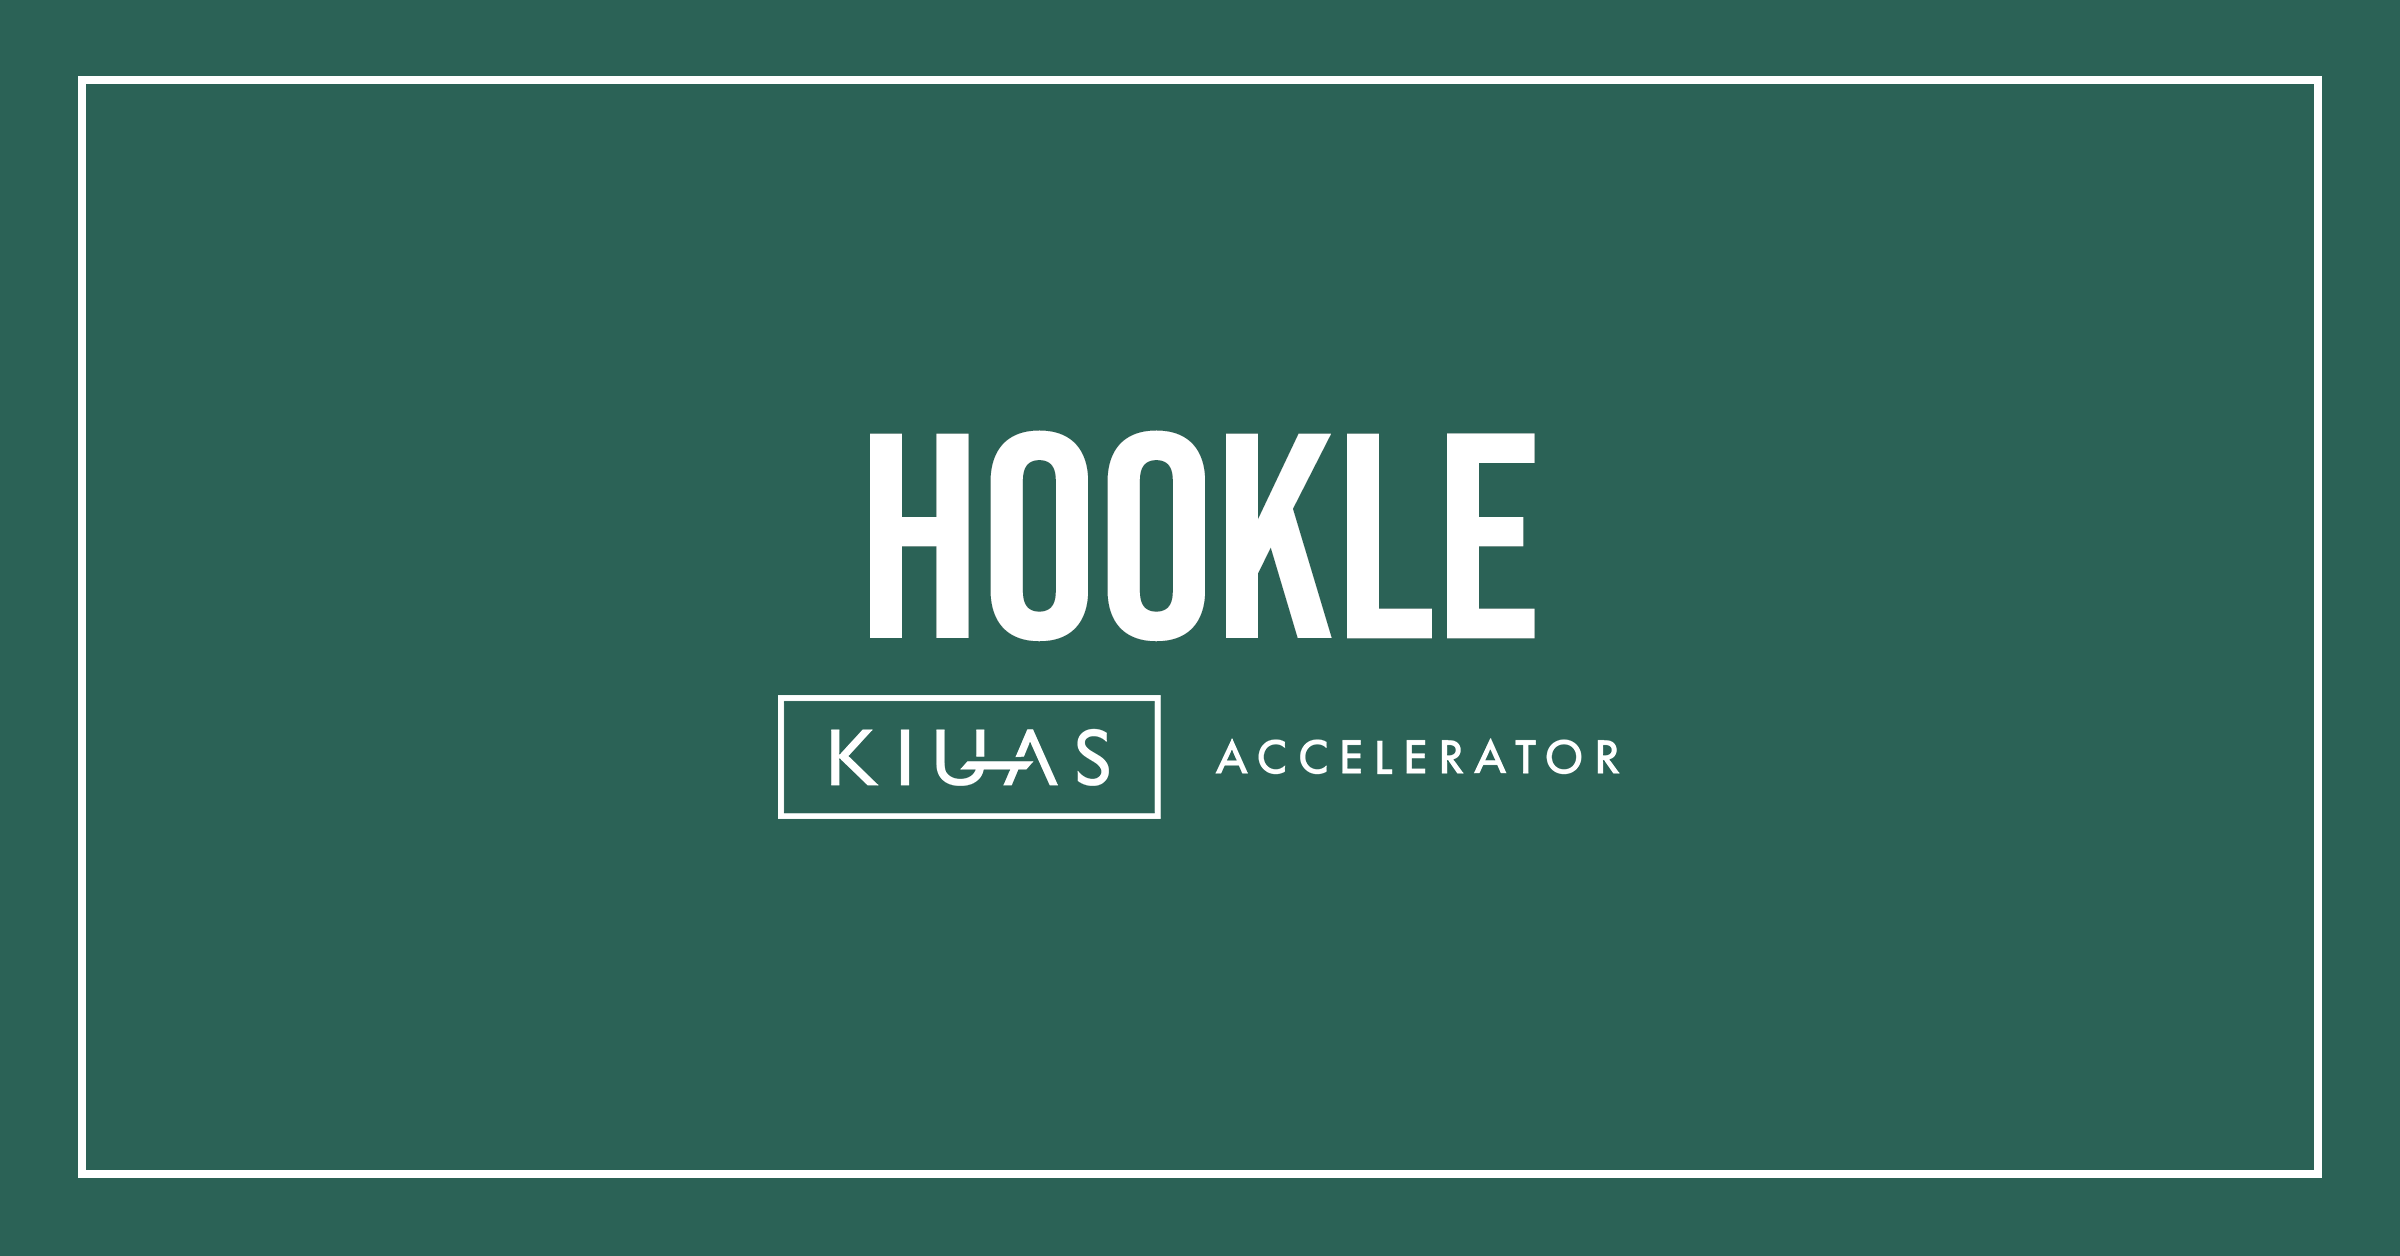 Hookle has been selected to participate in Kiuas Accelerator Program 2019!